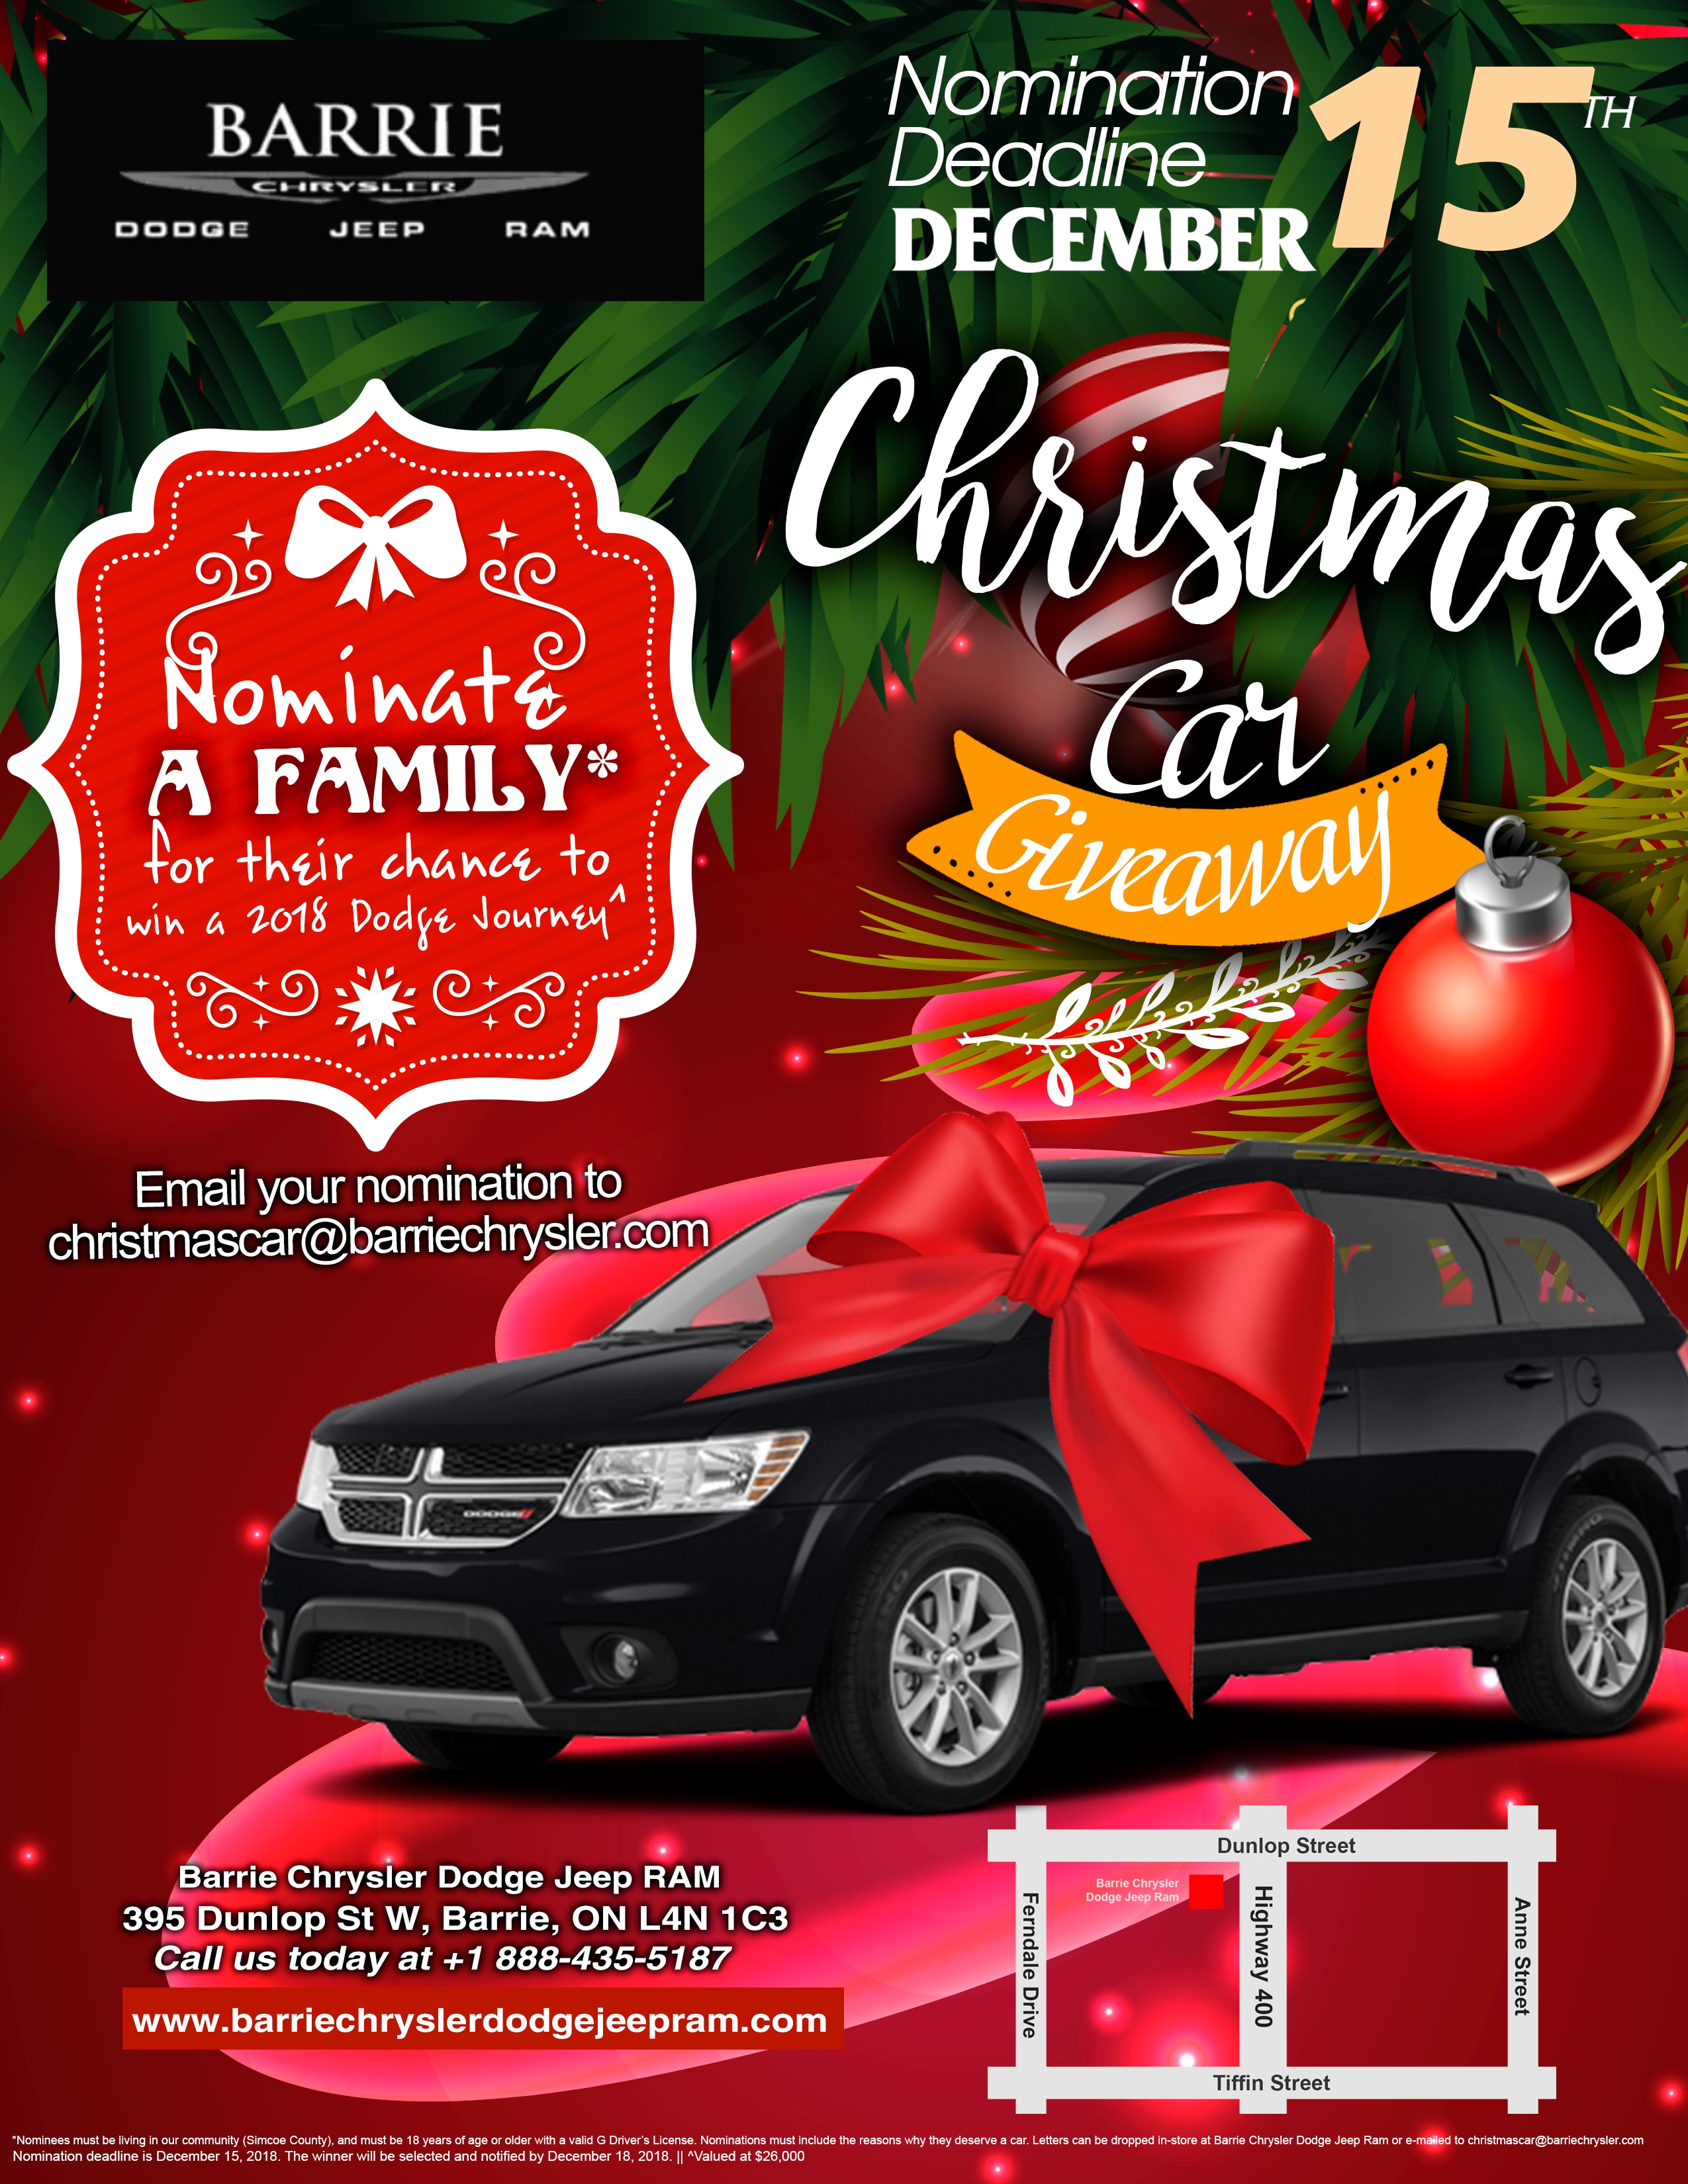 Ionia christmas car giveaway